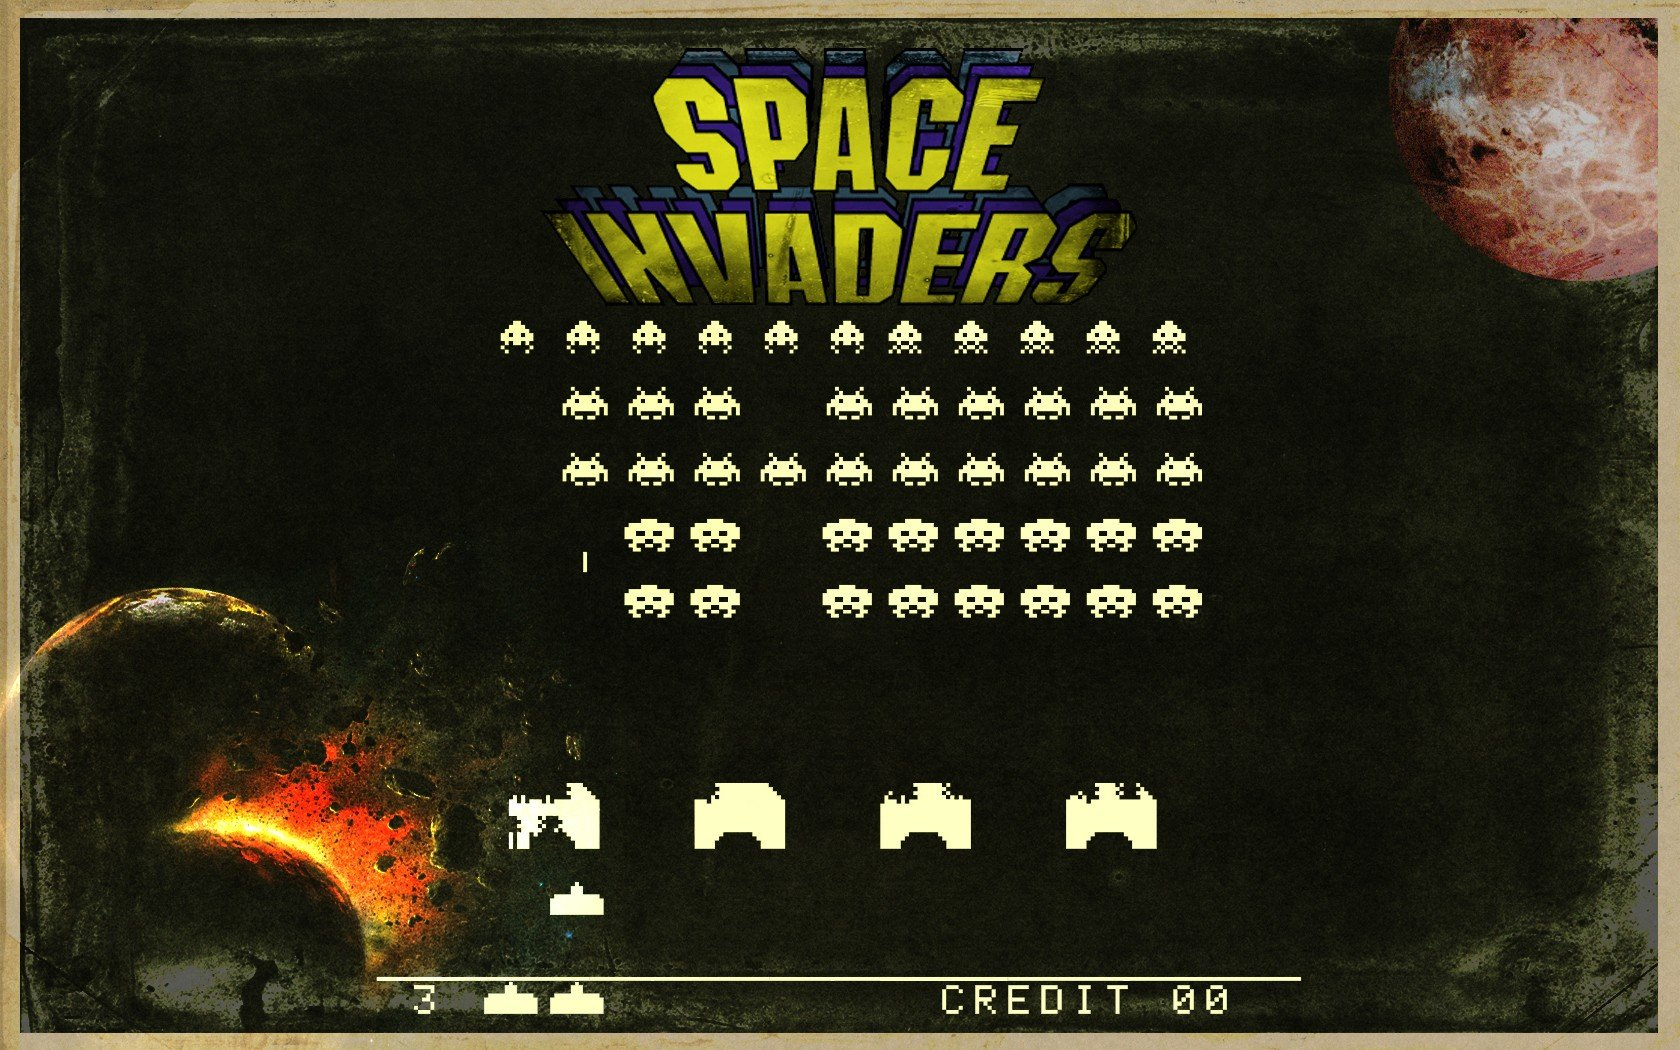 Outer space stars vintage old planets school space - Vintage space wallpaper ...